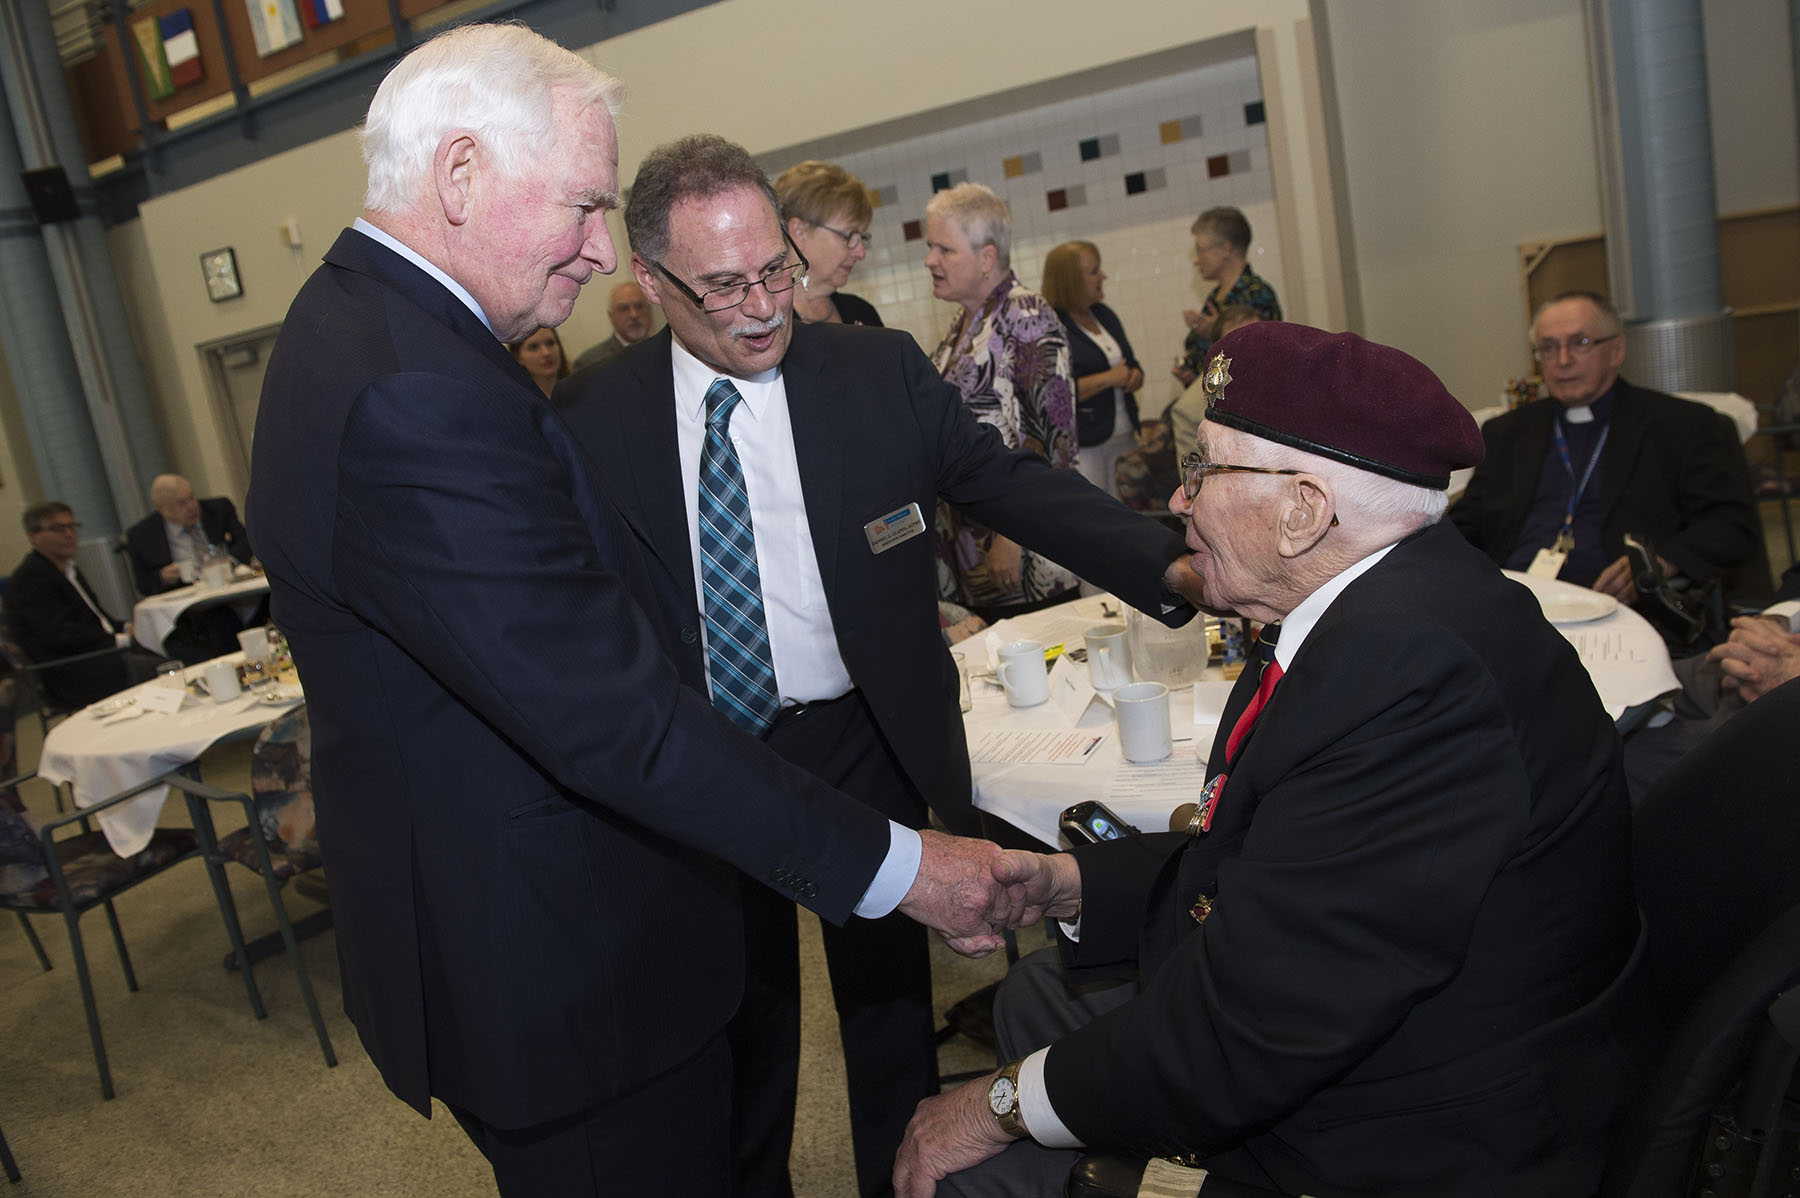 The Perley and Rideau Veterans' Health Centre is one of the largest long-term care homes in Ontario, with 200 beds for seniors from the community alongside 250 beds for veterans. With a staff of more than 800 supported by approximately 400 volunteers, the Perley Rideau enables all residents and seniors in the neighbouring community to live their lives to the fullest in a safe, supported and cheerful environment.